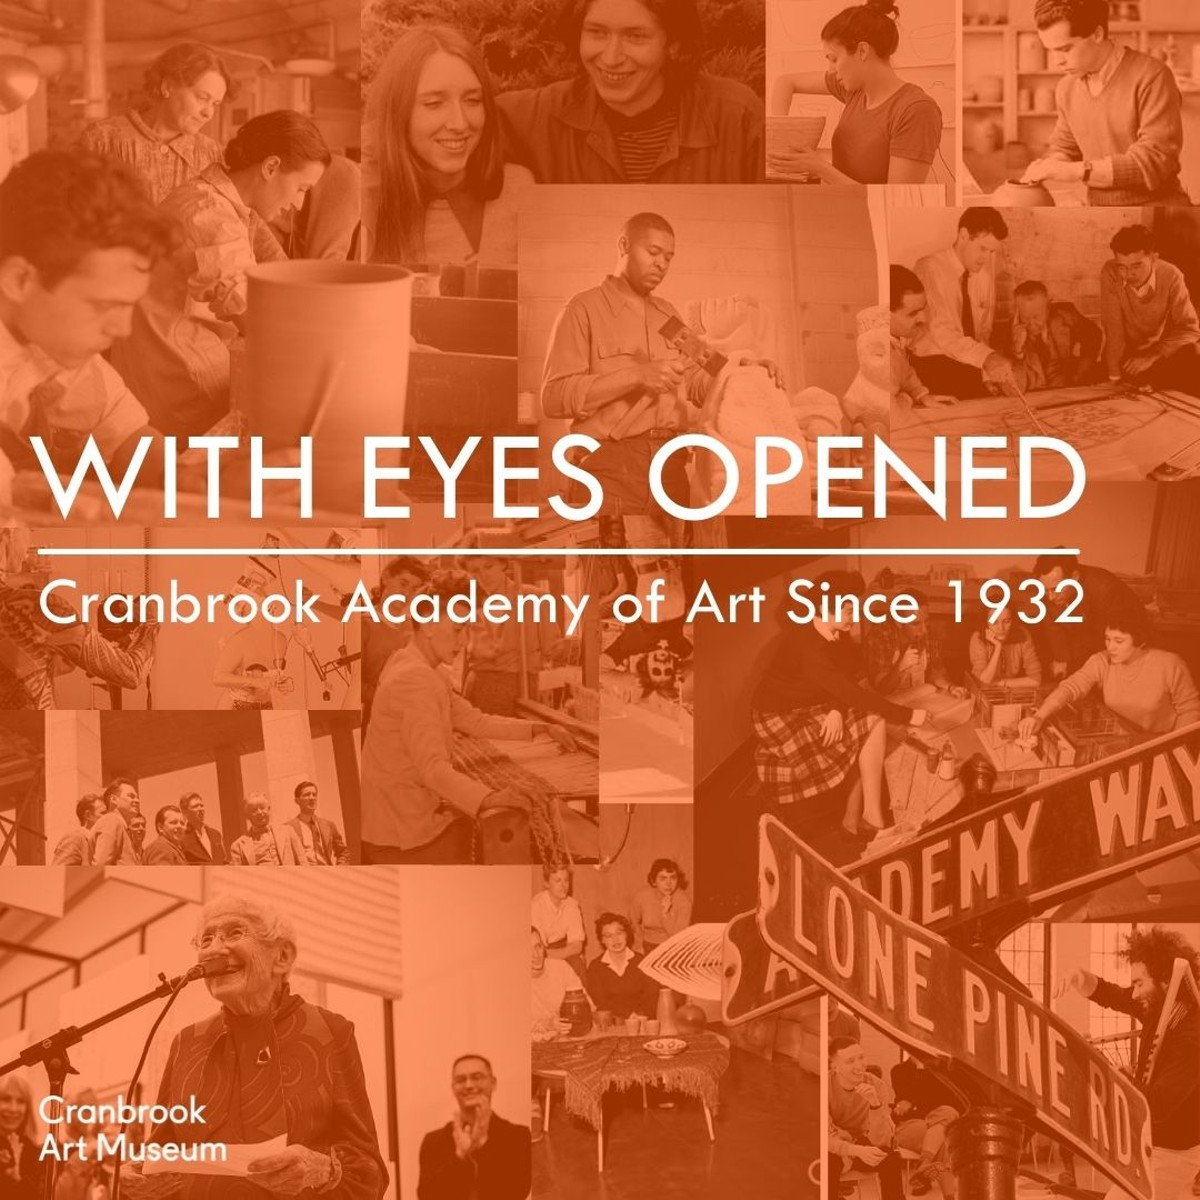 with_eyes_opened_cranbrook_academy_of_art_since_1932.jpg